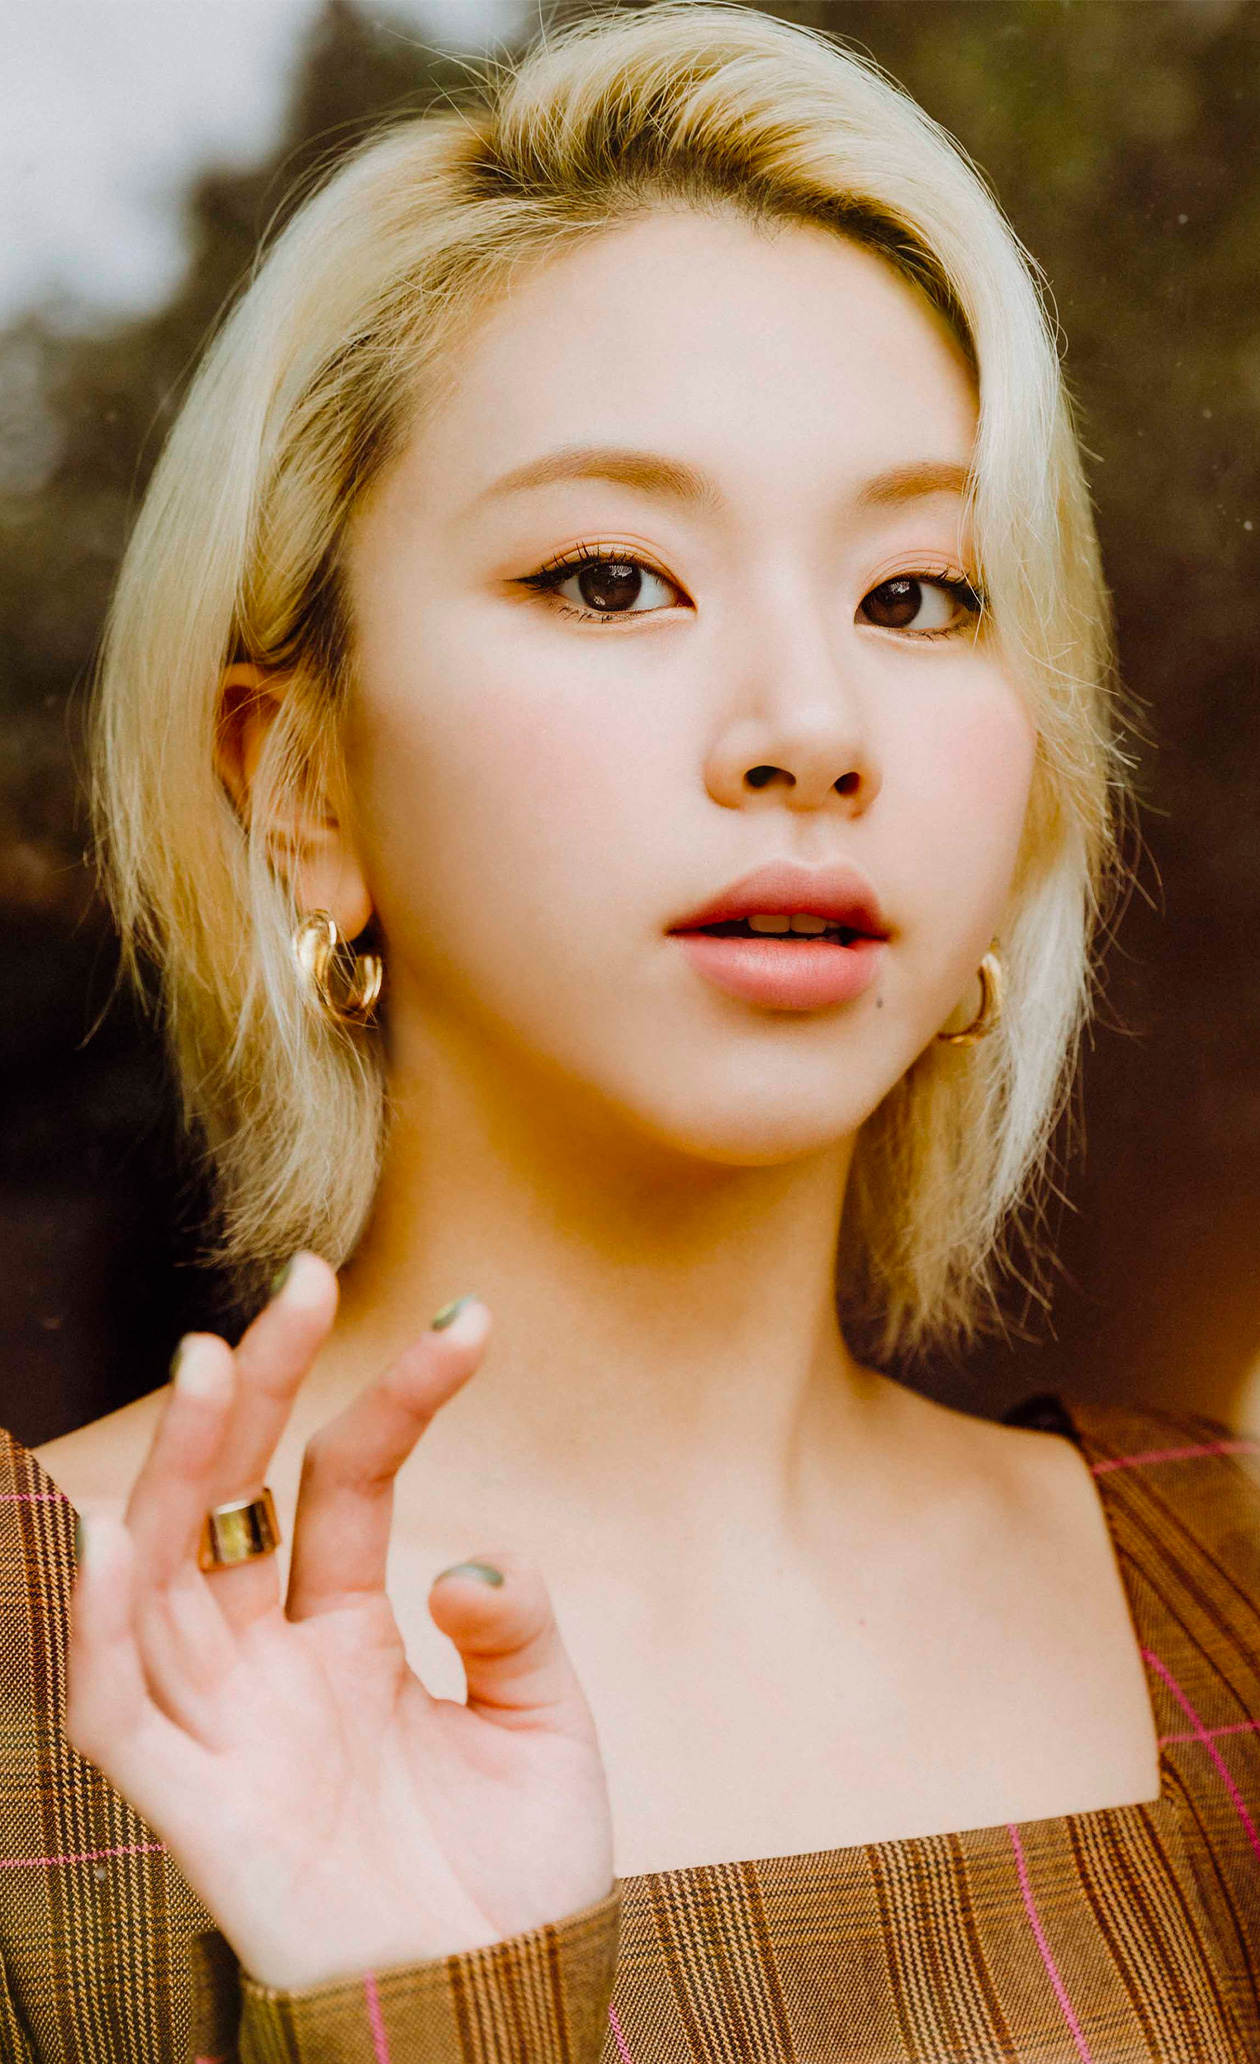 Chaeyoung sets a new trend in nail design